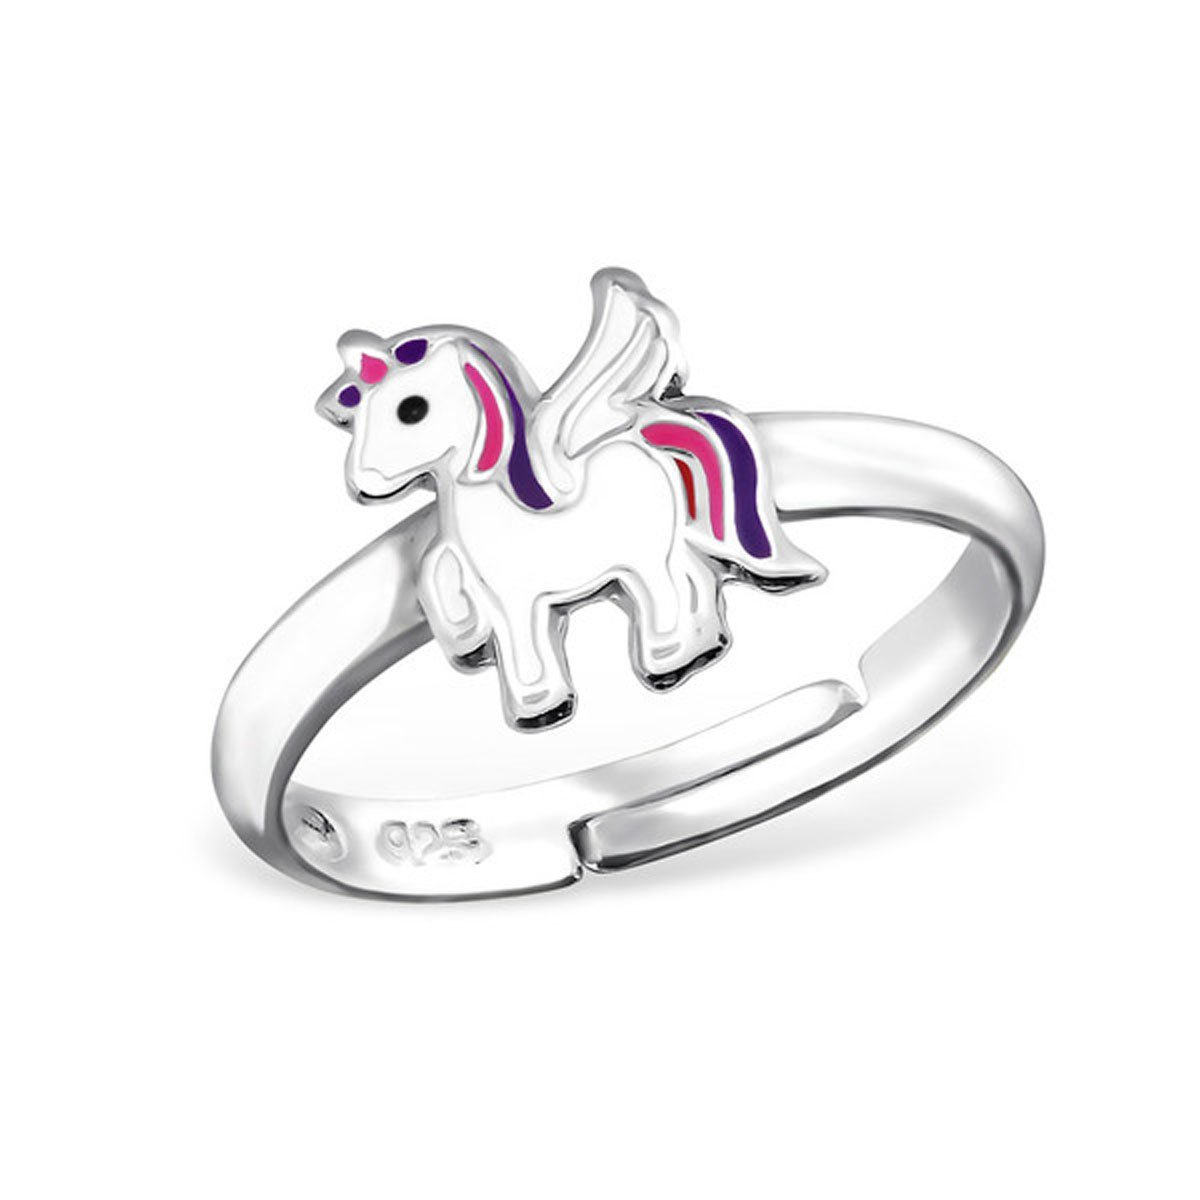 Cute Little Unicorn Ring Girl Jewelry Size Adjustable 3-4 Sterling Silver 925 (E30981)